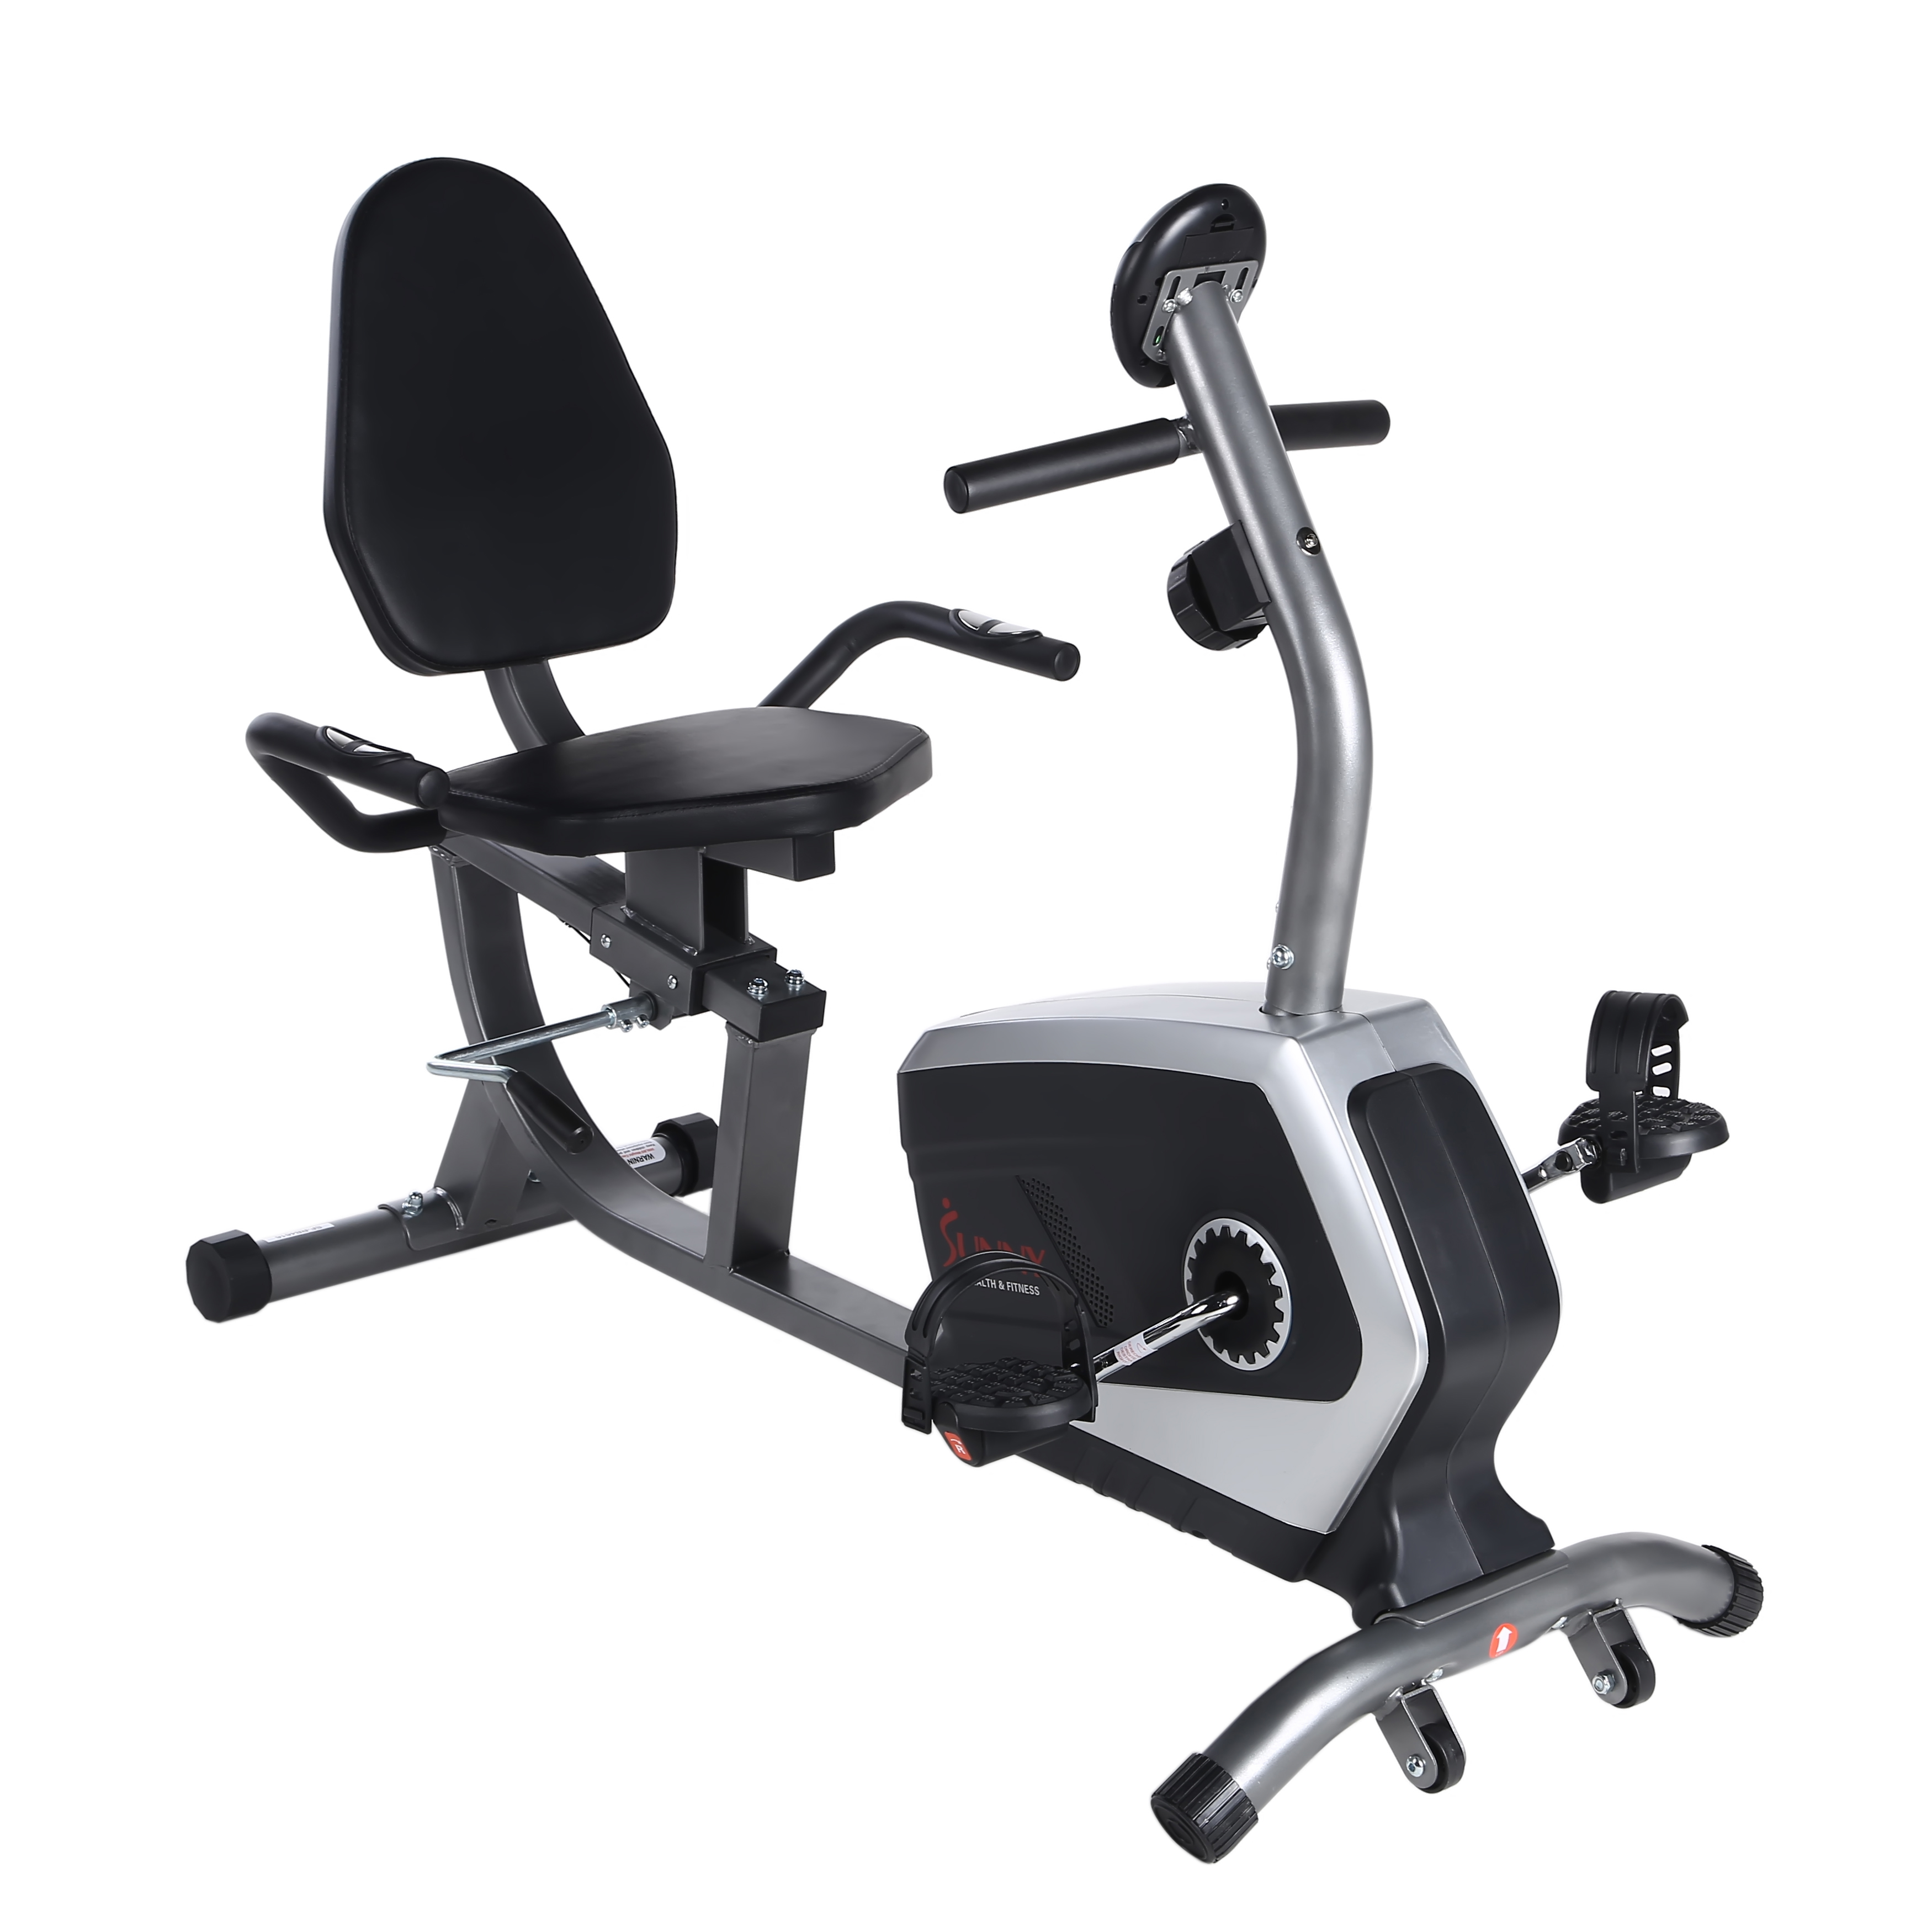 Sunny Health & Fitness SF-RB4616 Magnetic Recumbent Bike Exercise Bike